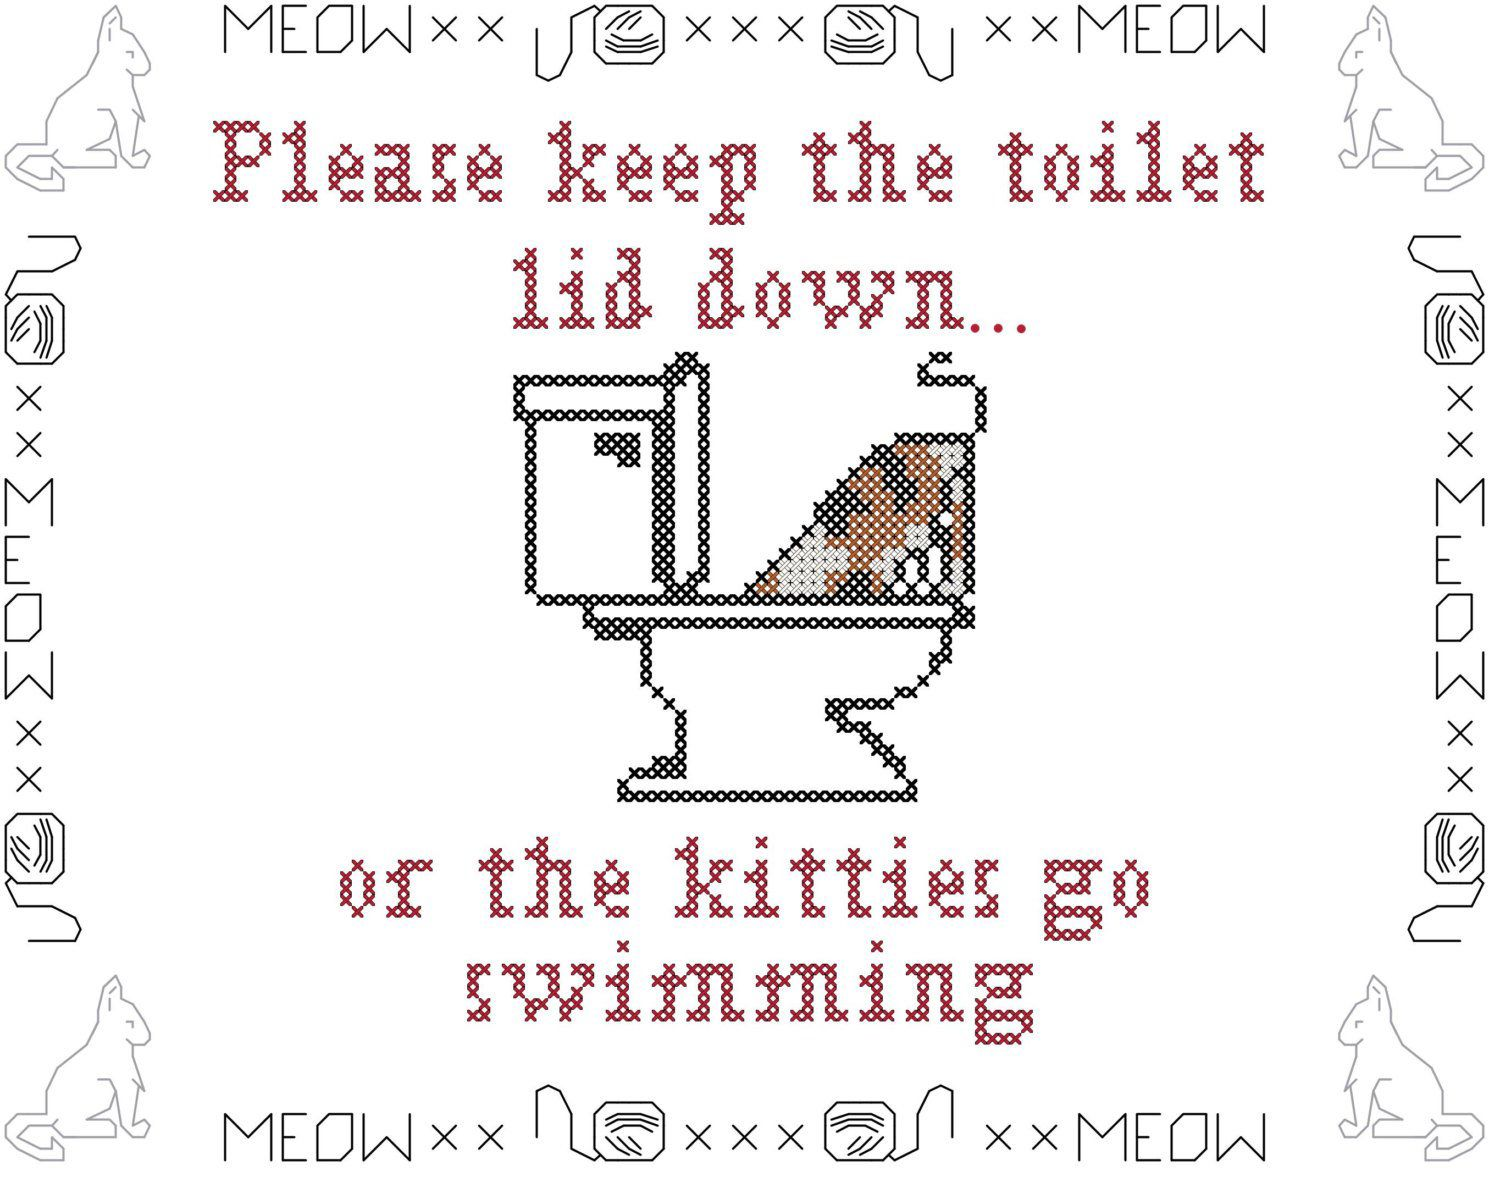 Cats Cross Stitch Pattern Please Keep The Lid Down Or The Kitties